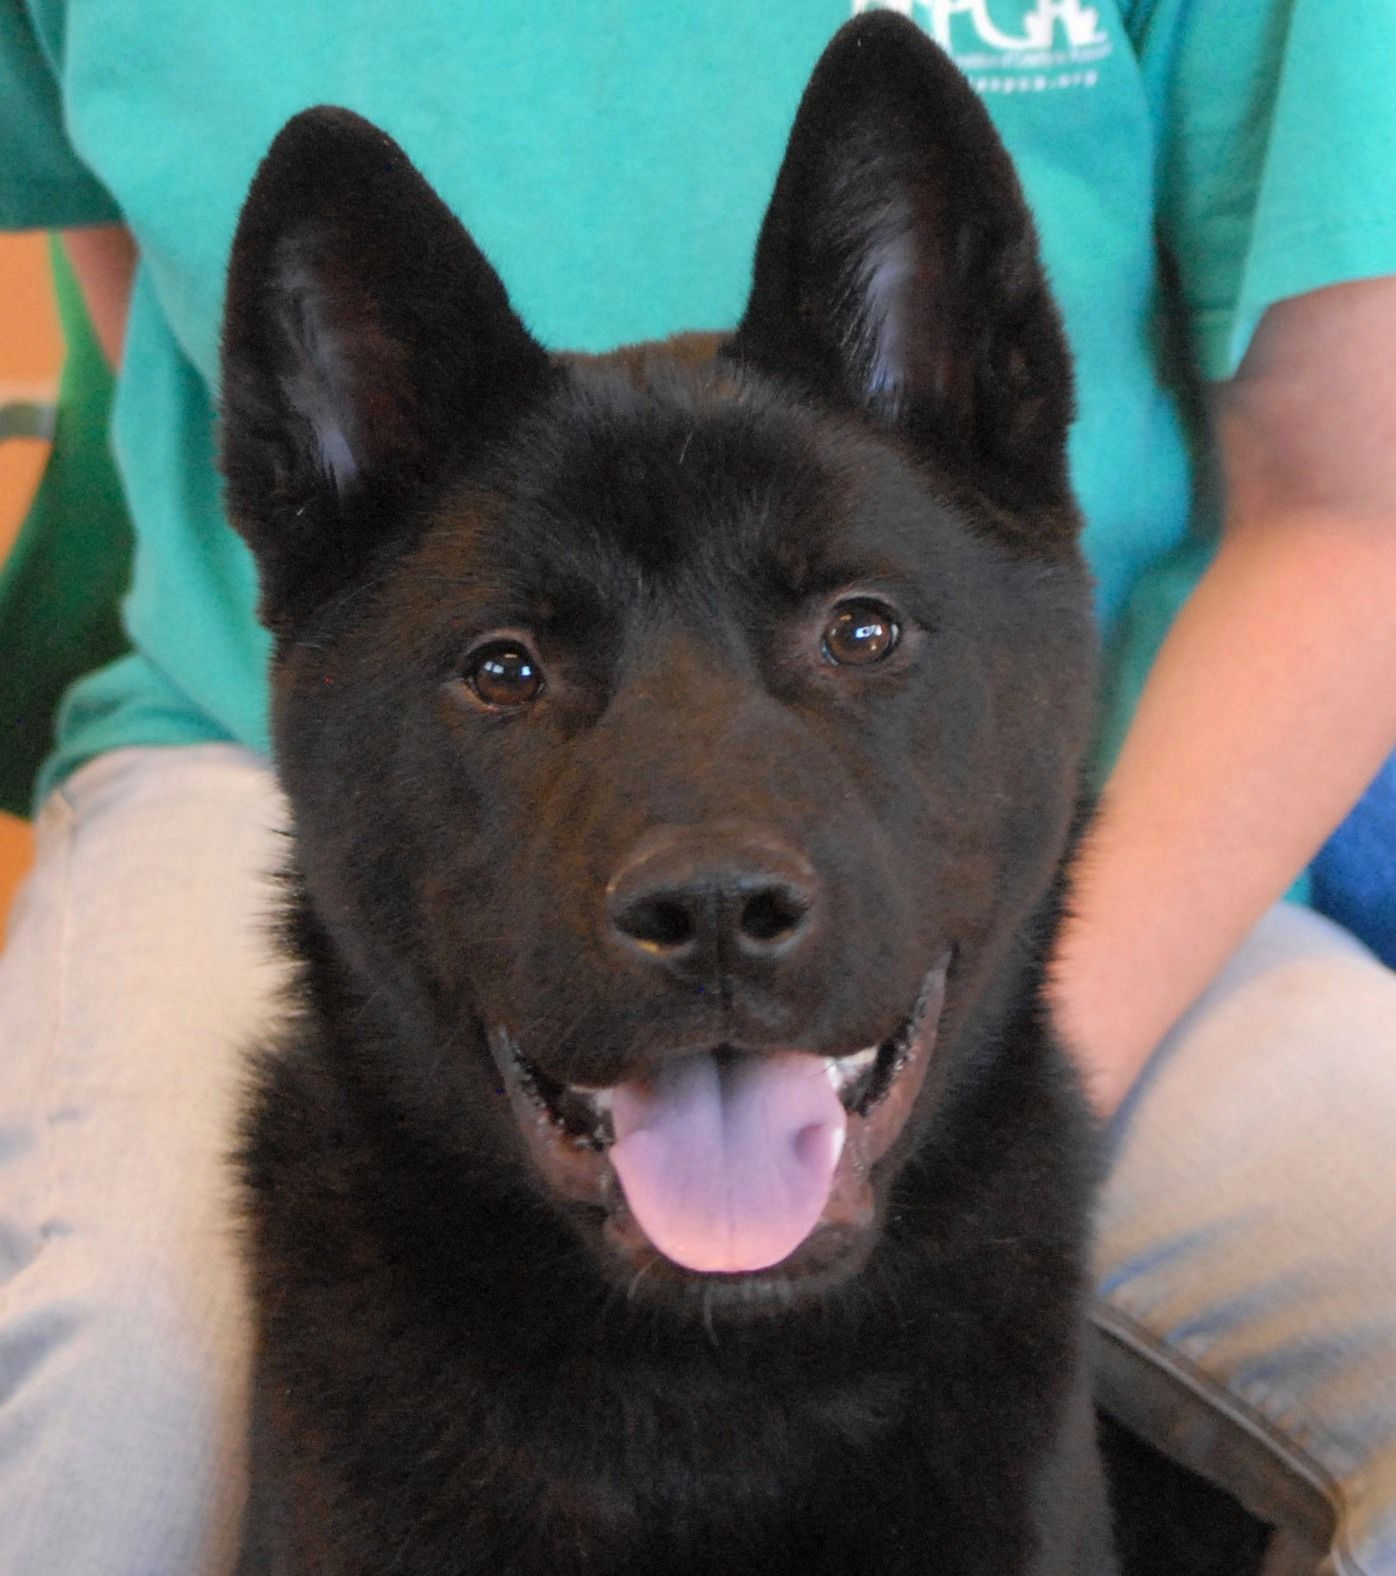 Hachi is an Akita puppy rescued perilously close to a Las